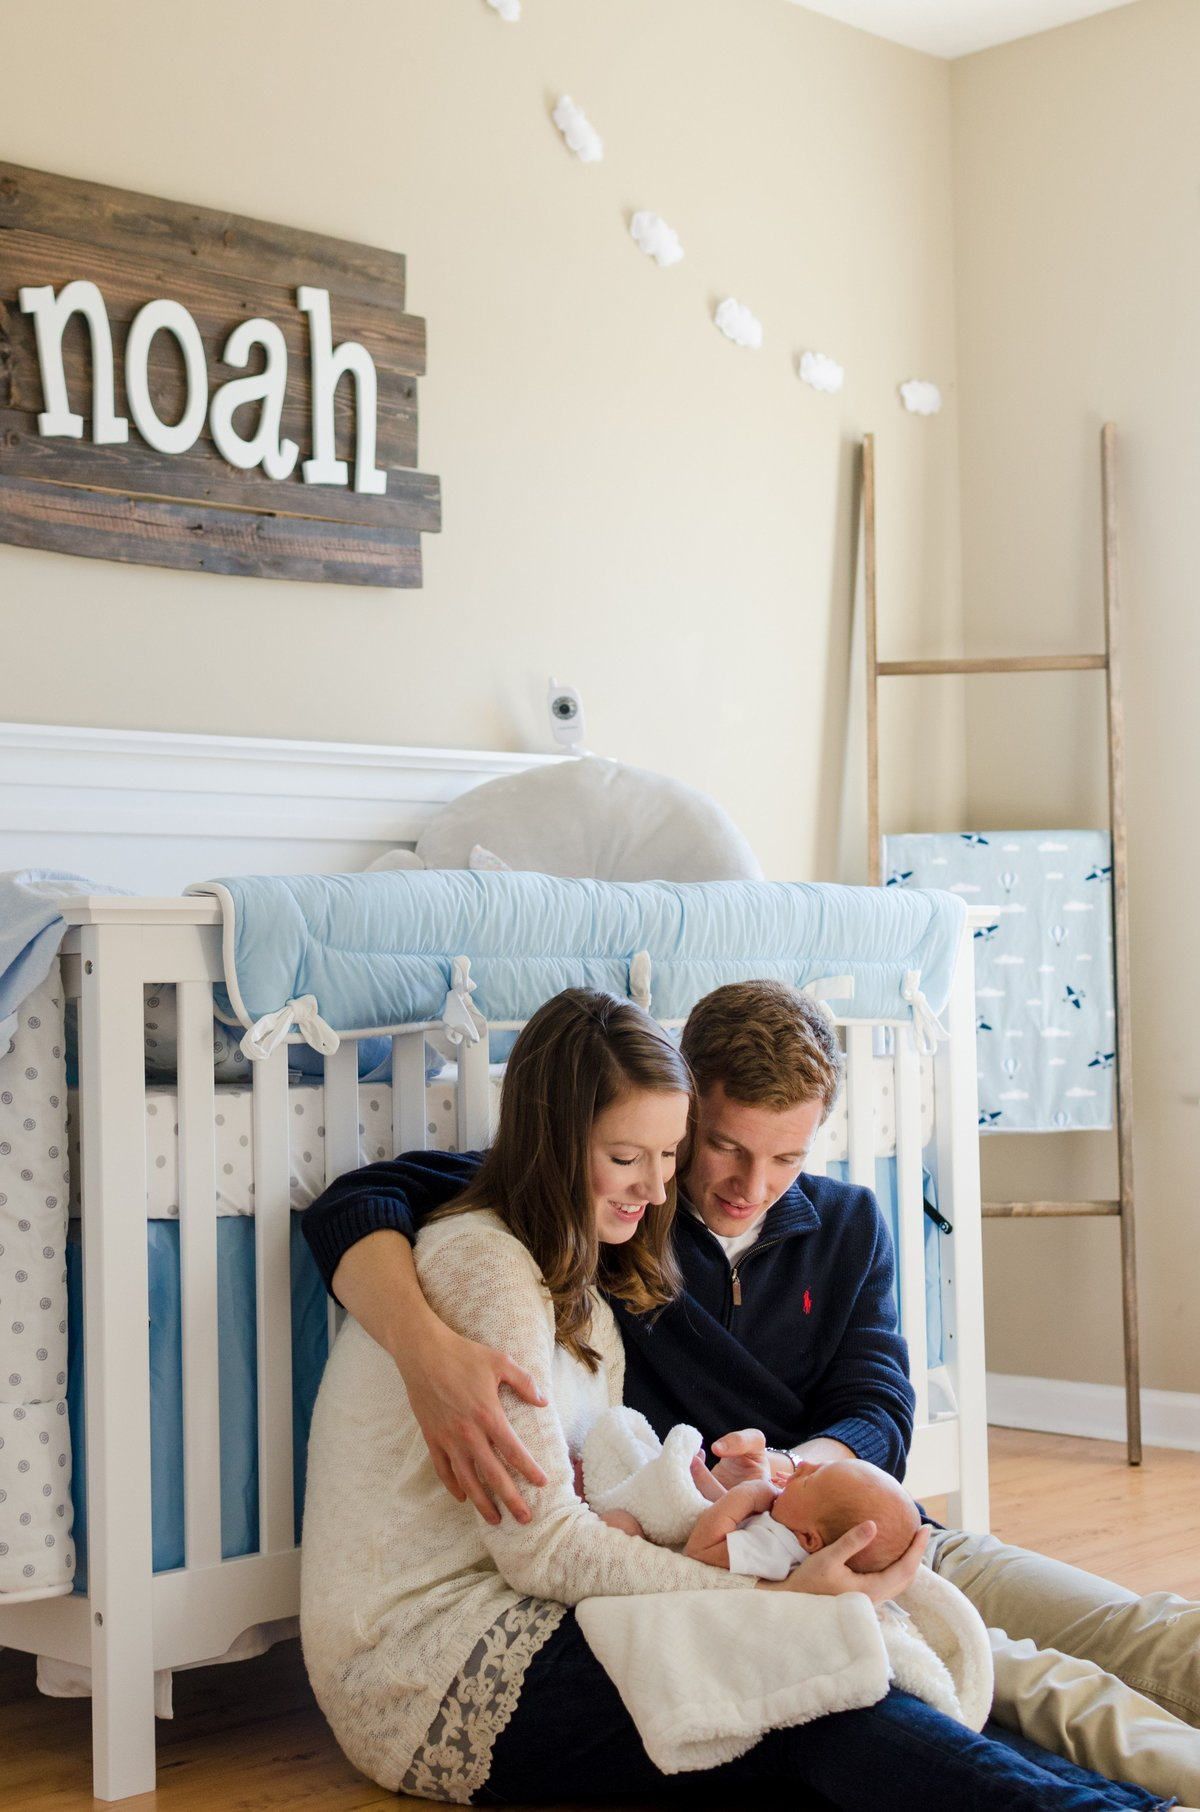 Noah-In-Home-Lifestyle-Newborn-Session-Murfreesboro-Nashville-Photographers+7